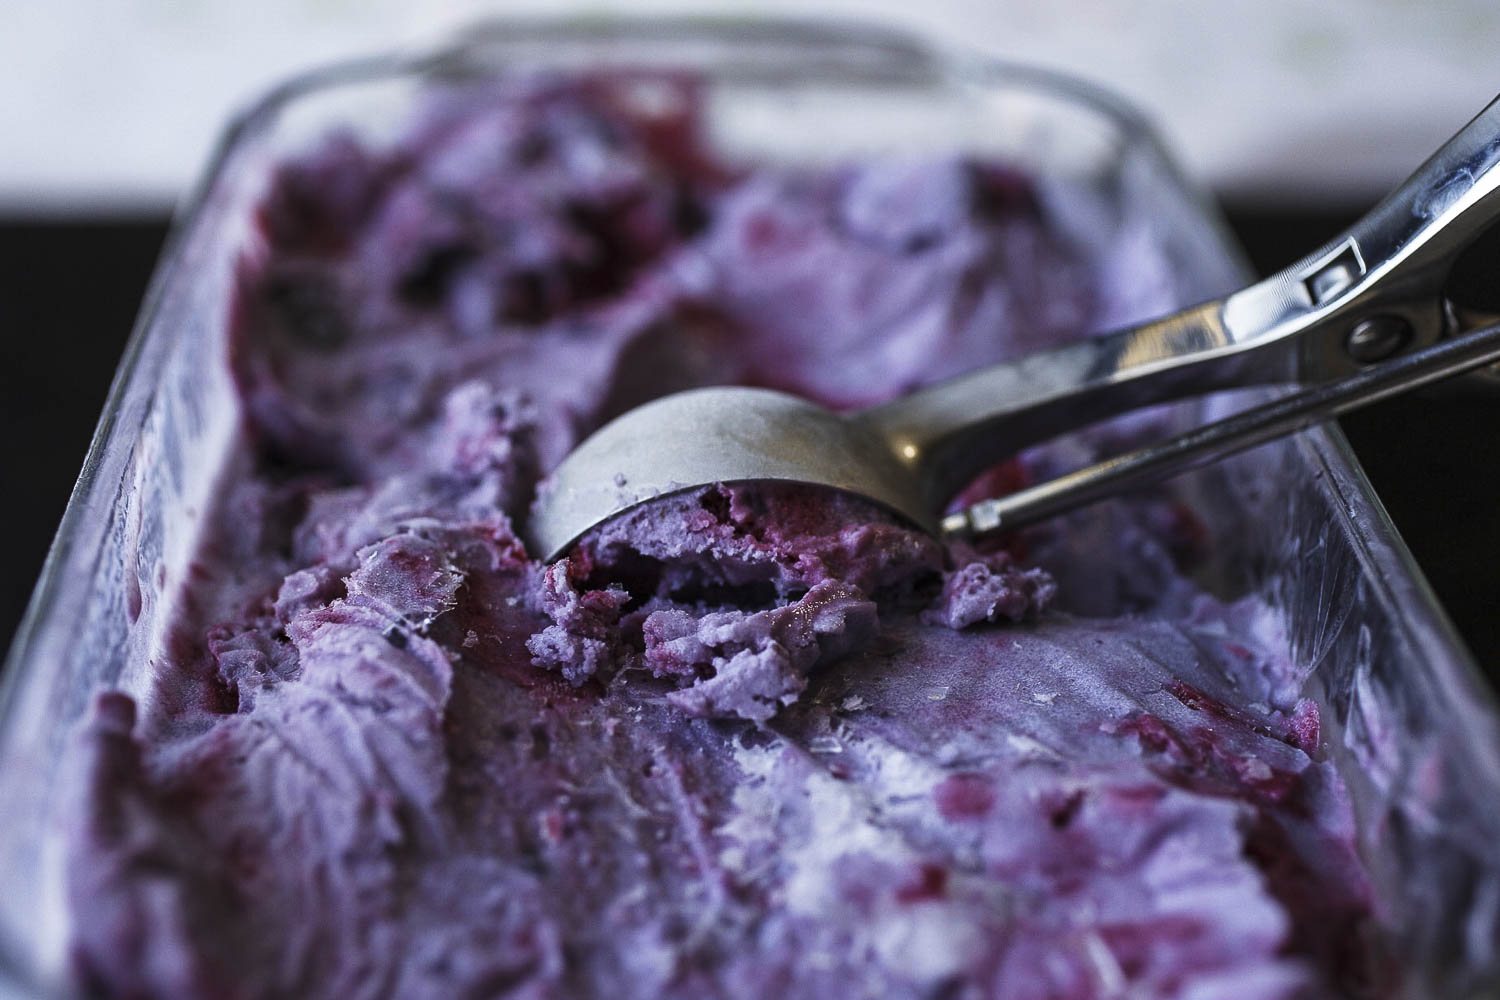 Roasted Blueberry Ice Cream with Raspberry Swirl close up